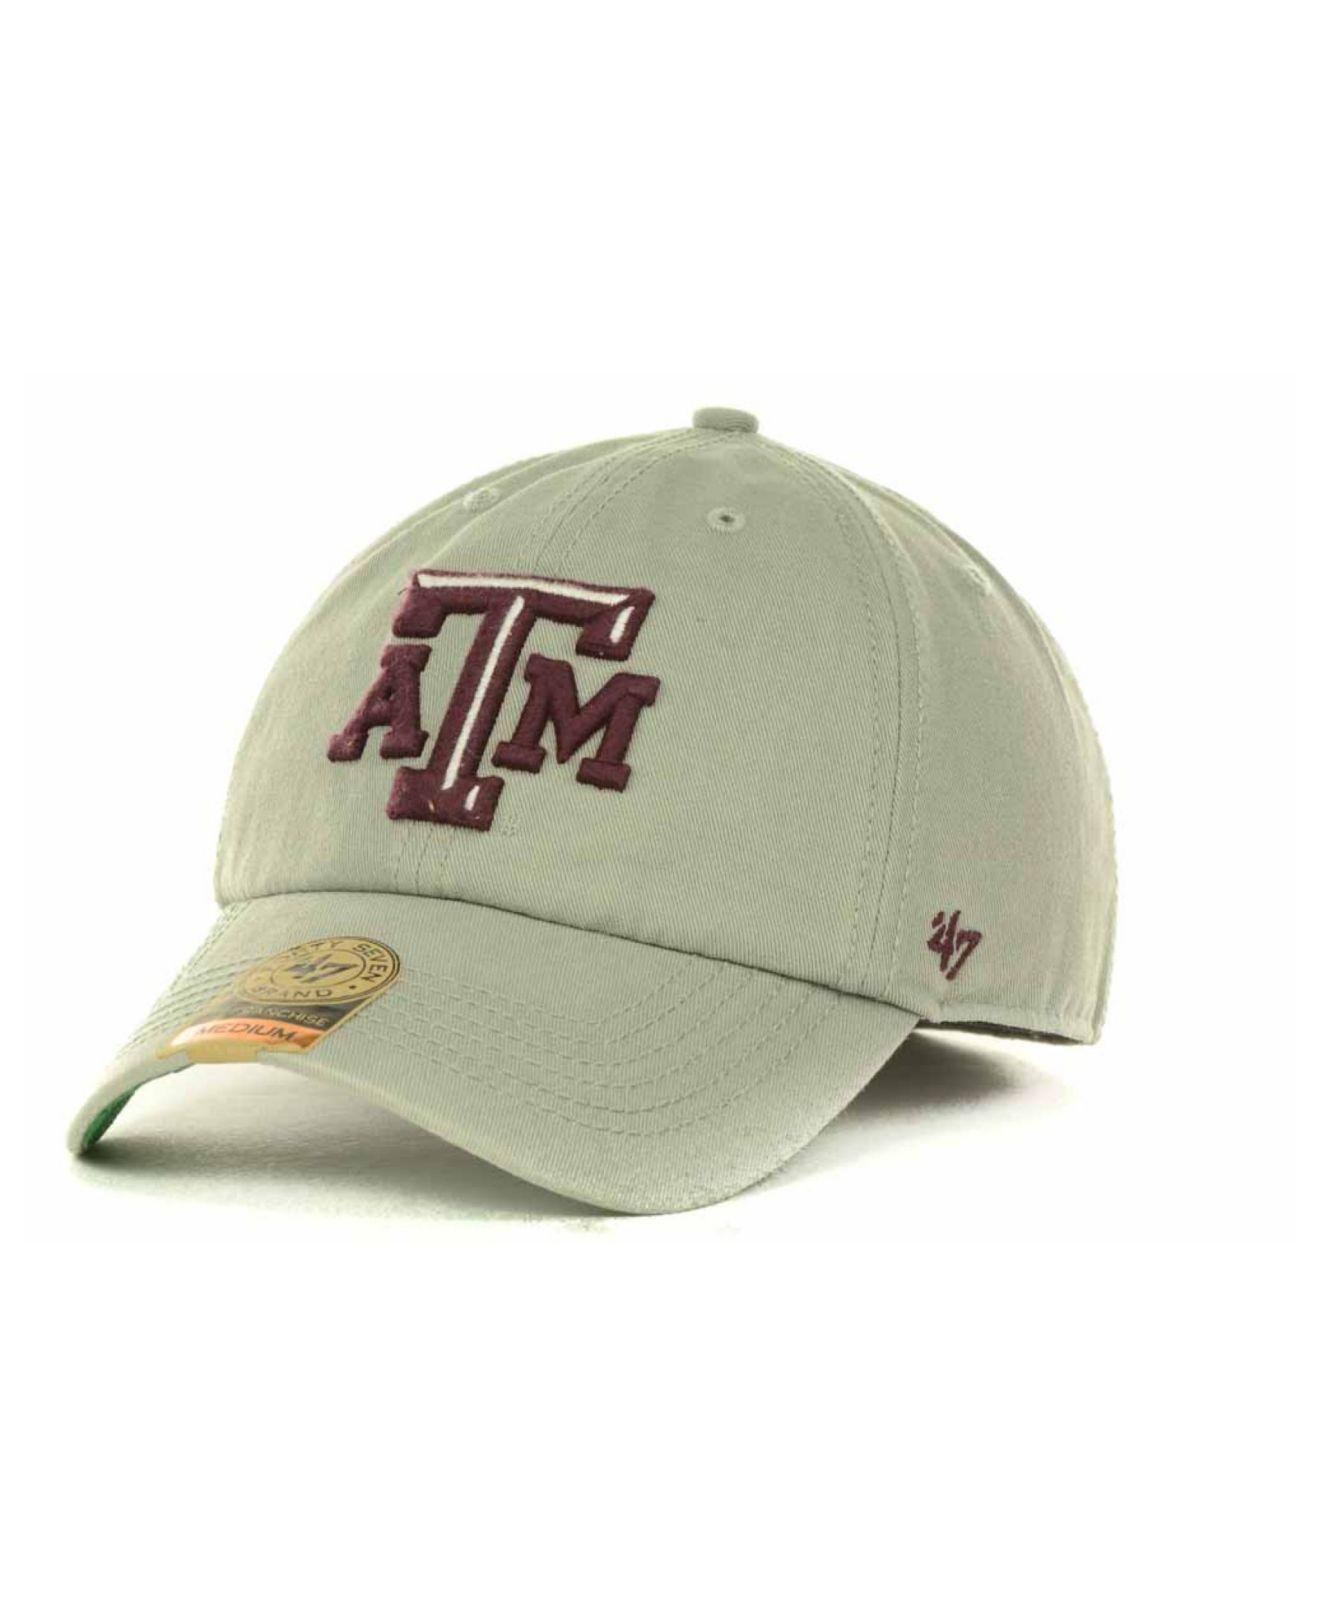 official photos 5933f 16db3 ... discount code for 47 brand. mens gray texas am aggies franchise cap  49649 69ff0